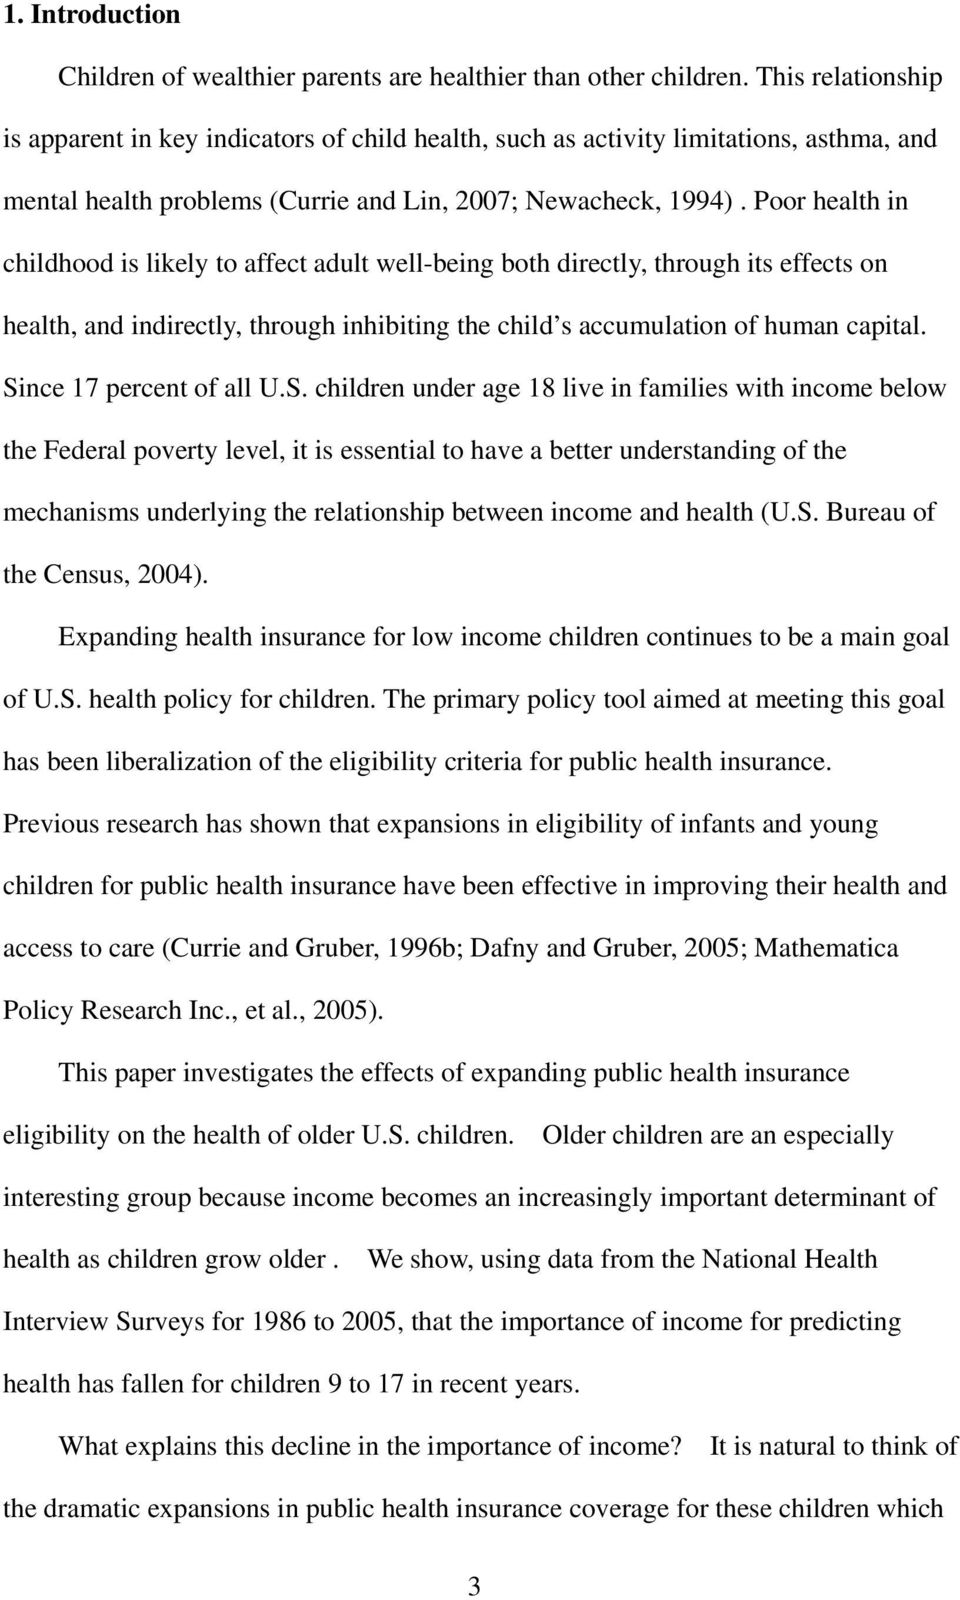 Poor health in childhood is likely to affect adult well-being both directly, through its effects on health, and indirectly, through inhibiting the child s accumulation of human capital.